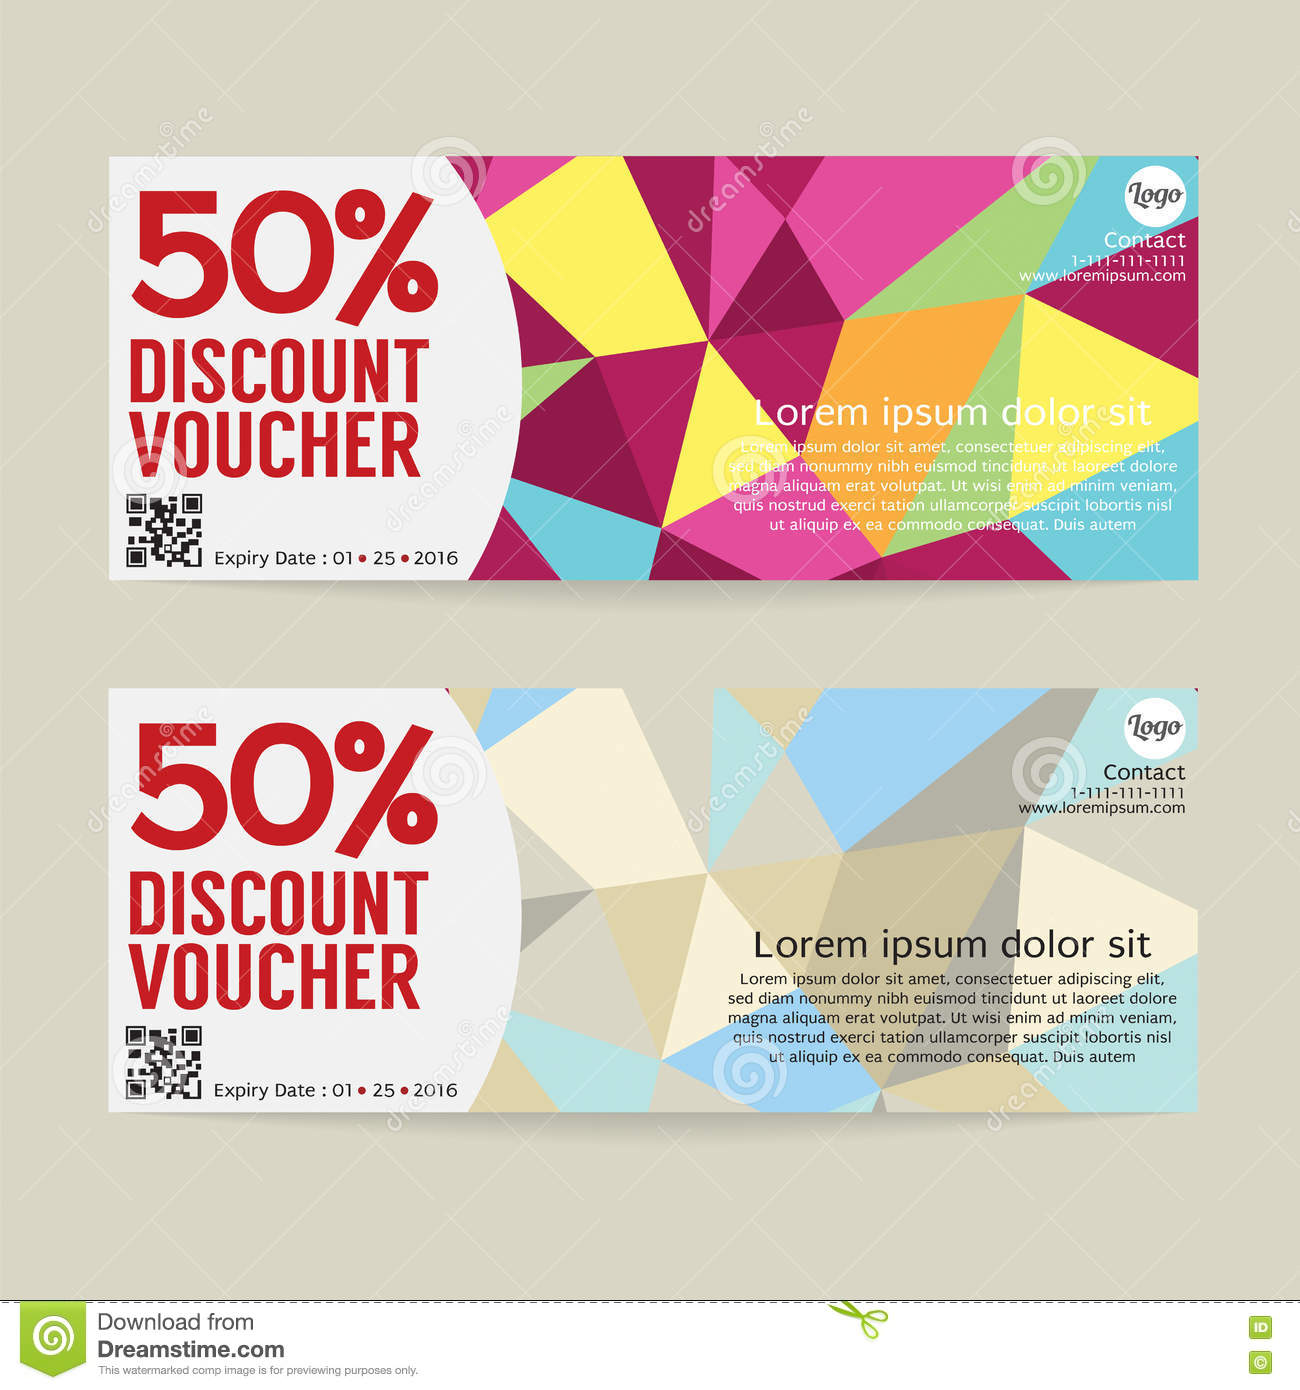 Amazing 50 Percent Discount Voucher Template.  Free Discount Vouchers